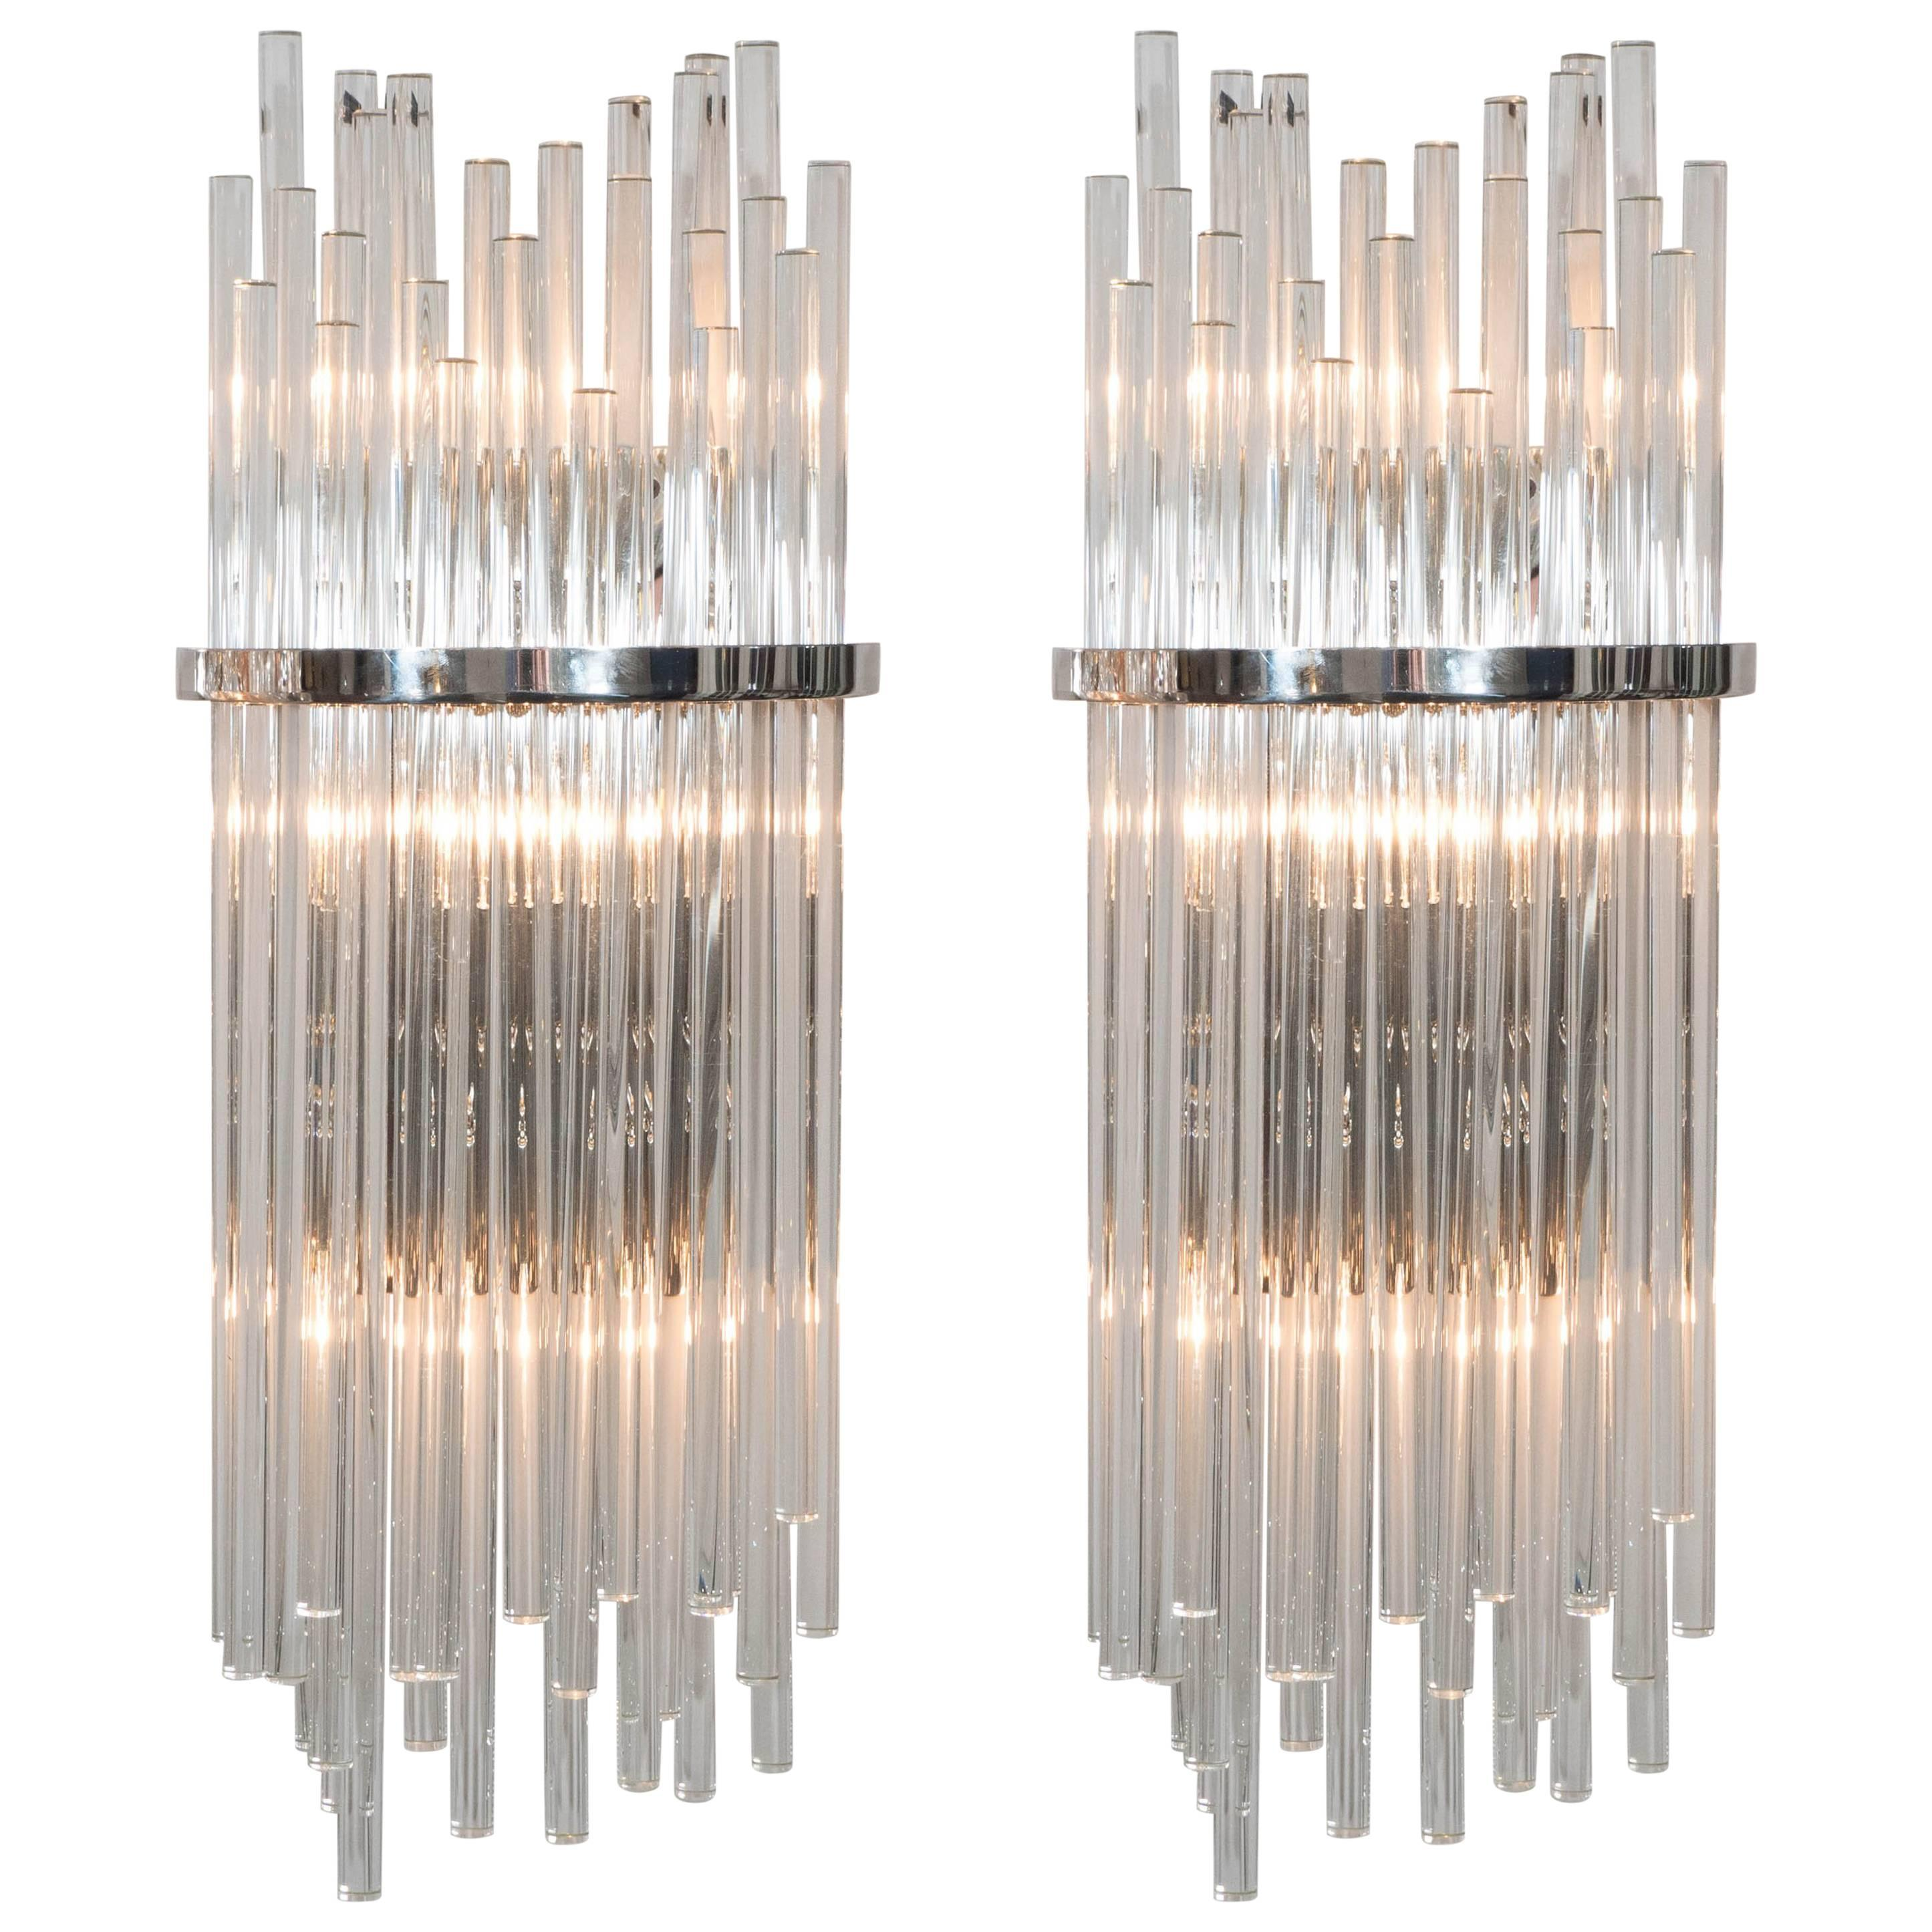 Pair of Custom Large Glass Rod Sconces with Polished Nickel Frame